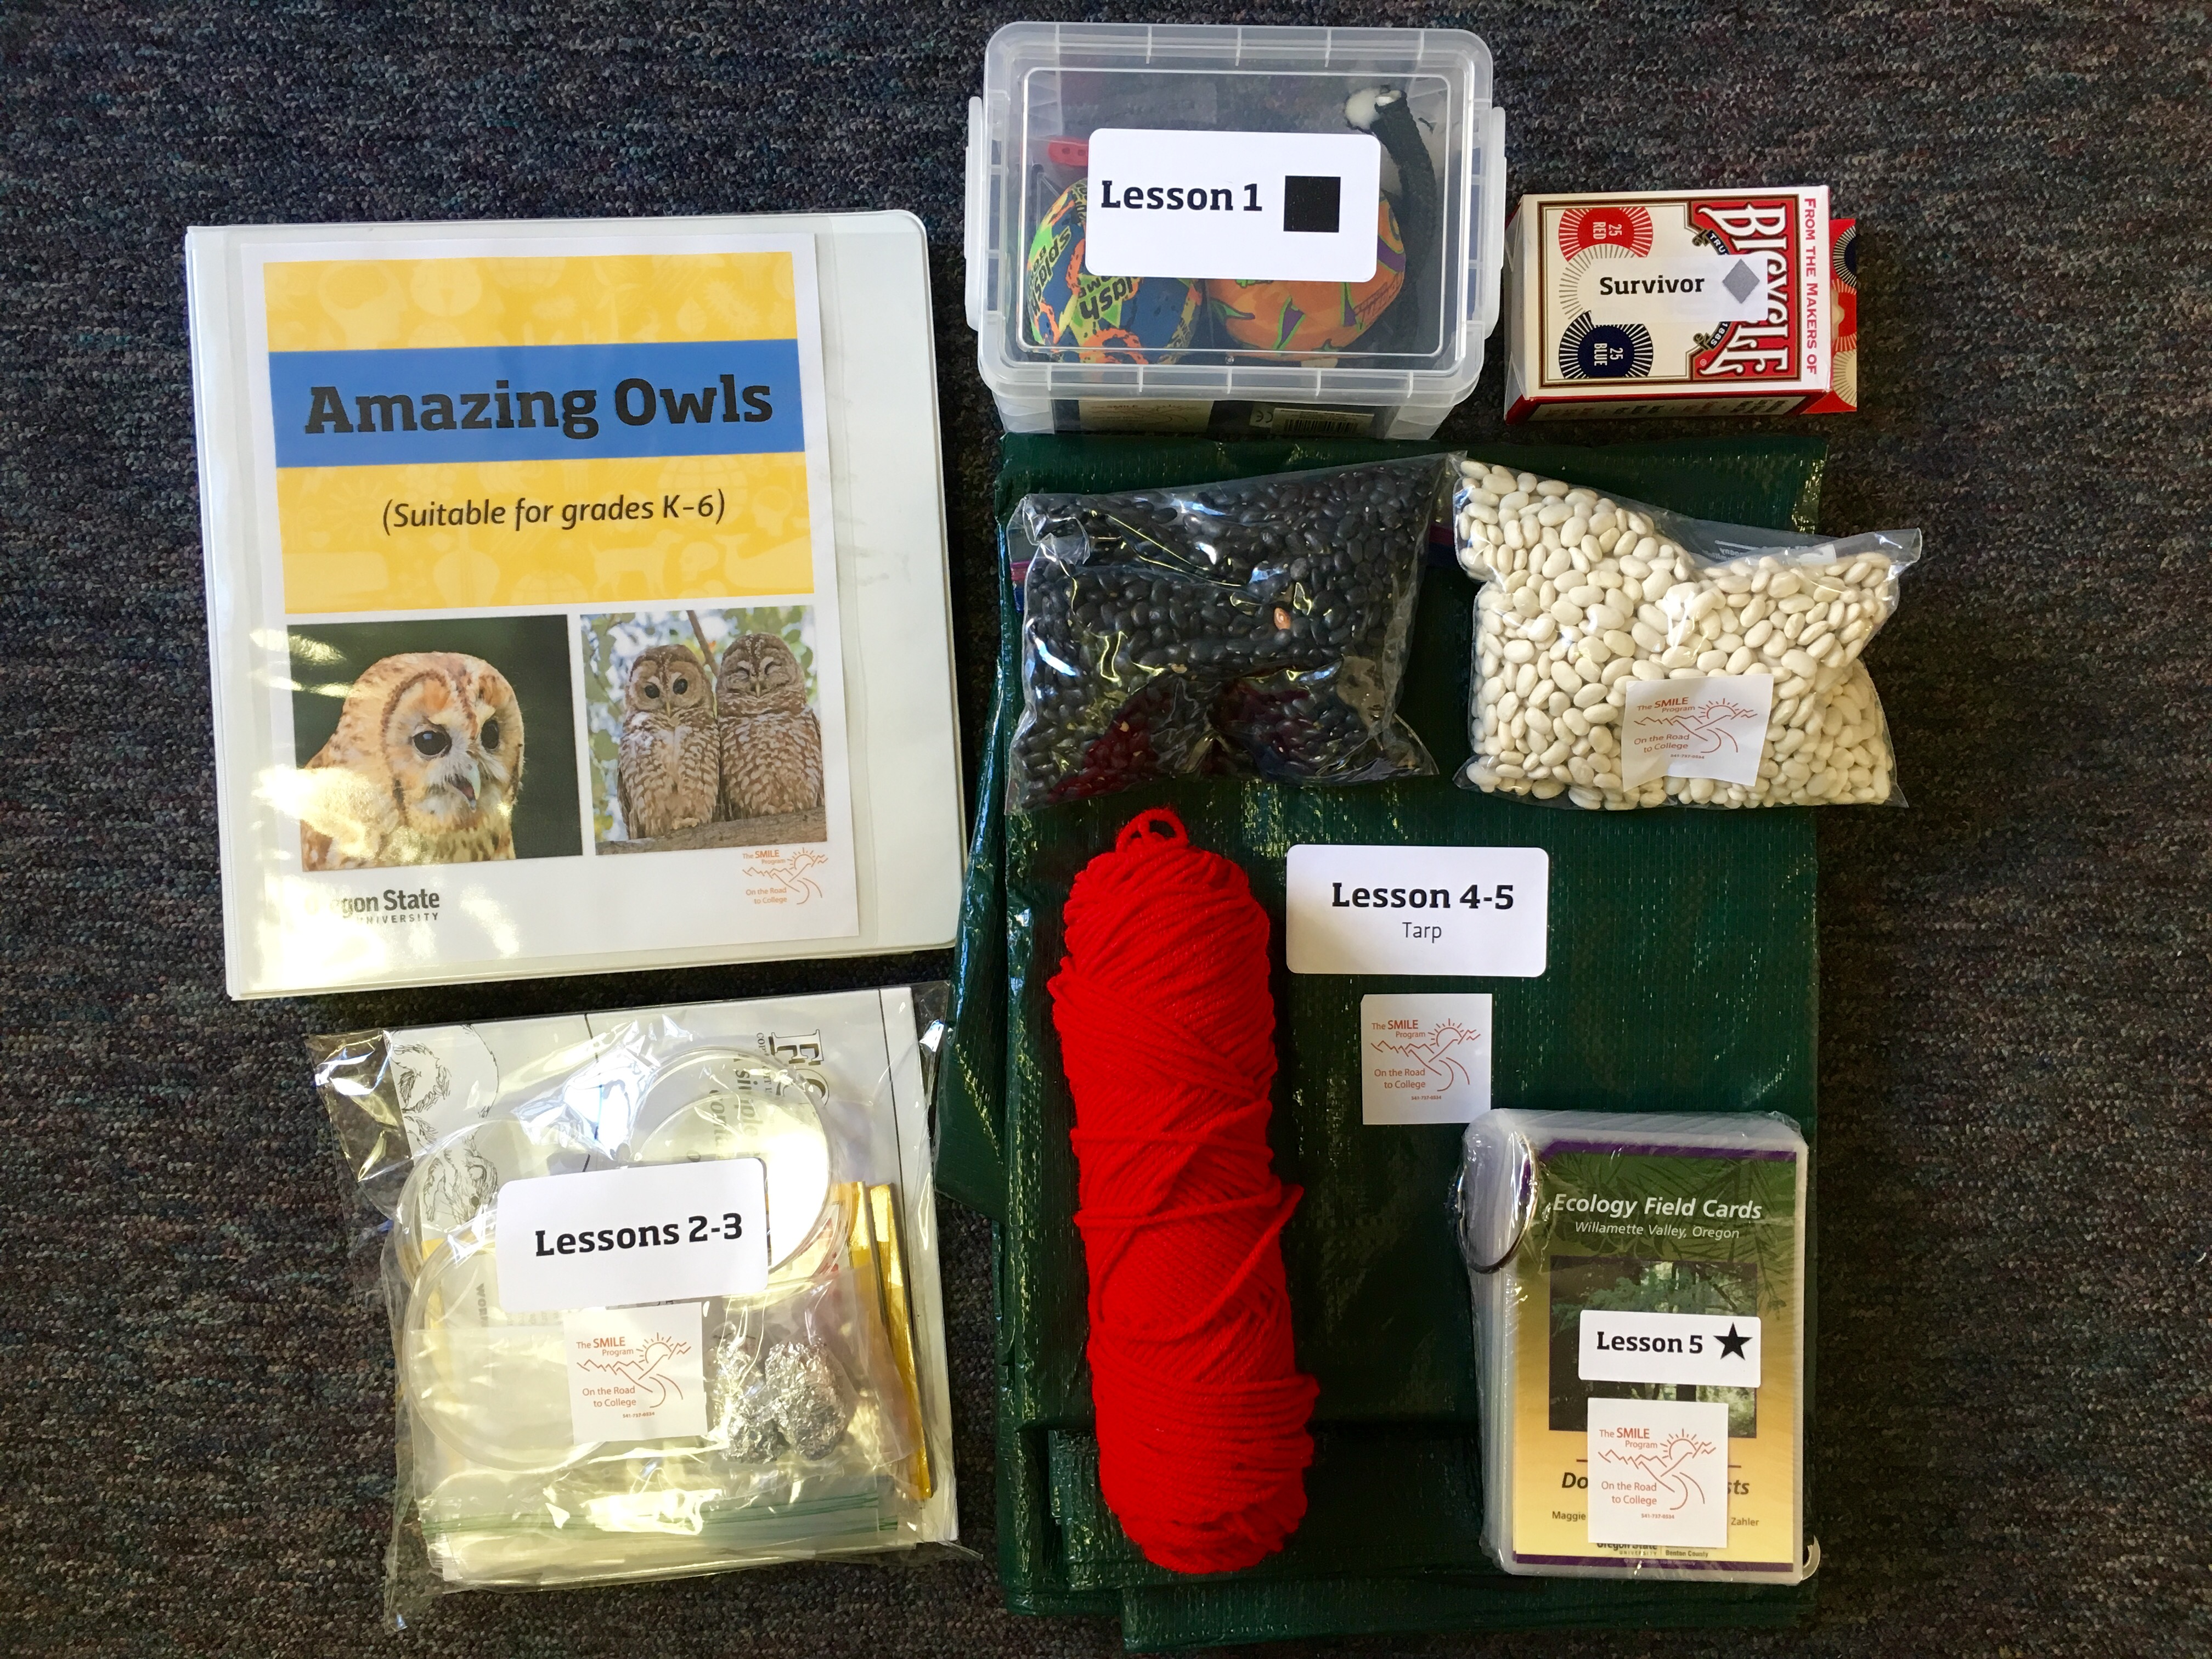 Contents of Amazing Owl kit